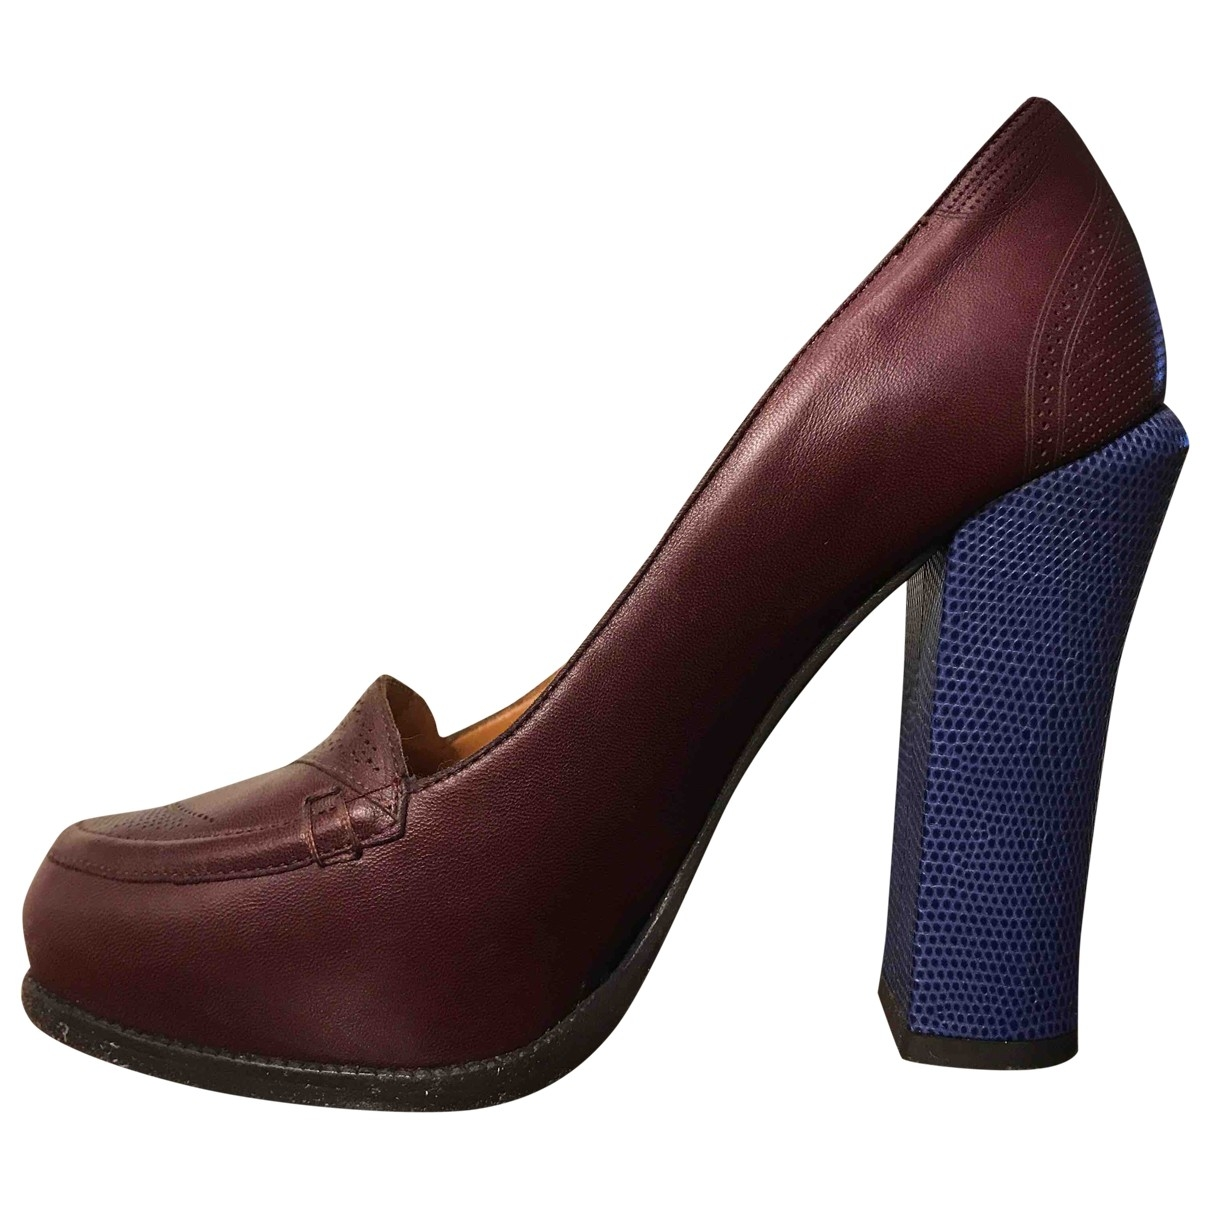 Fendi \N Pumps in  Braun Leder